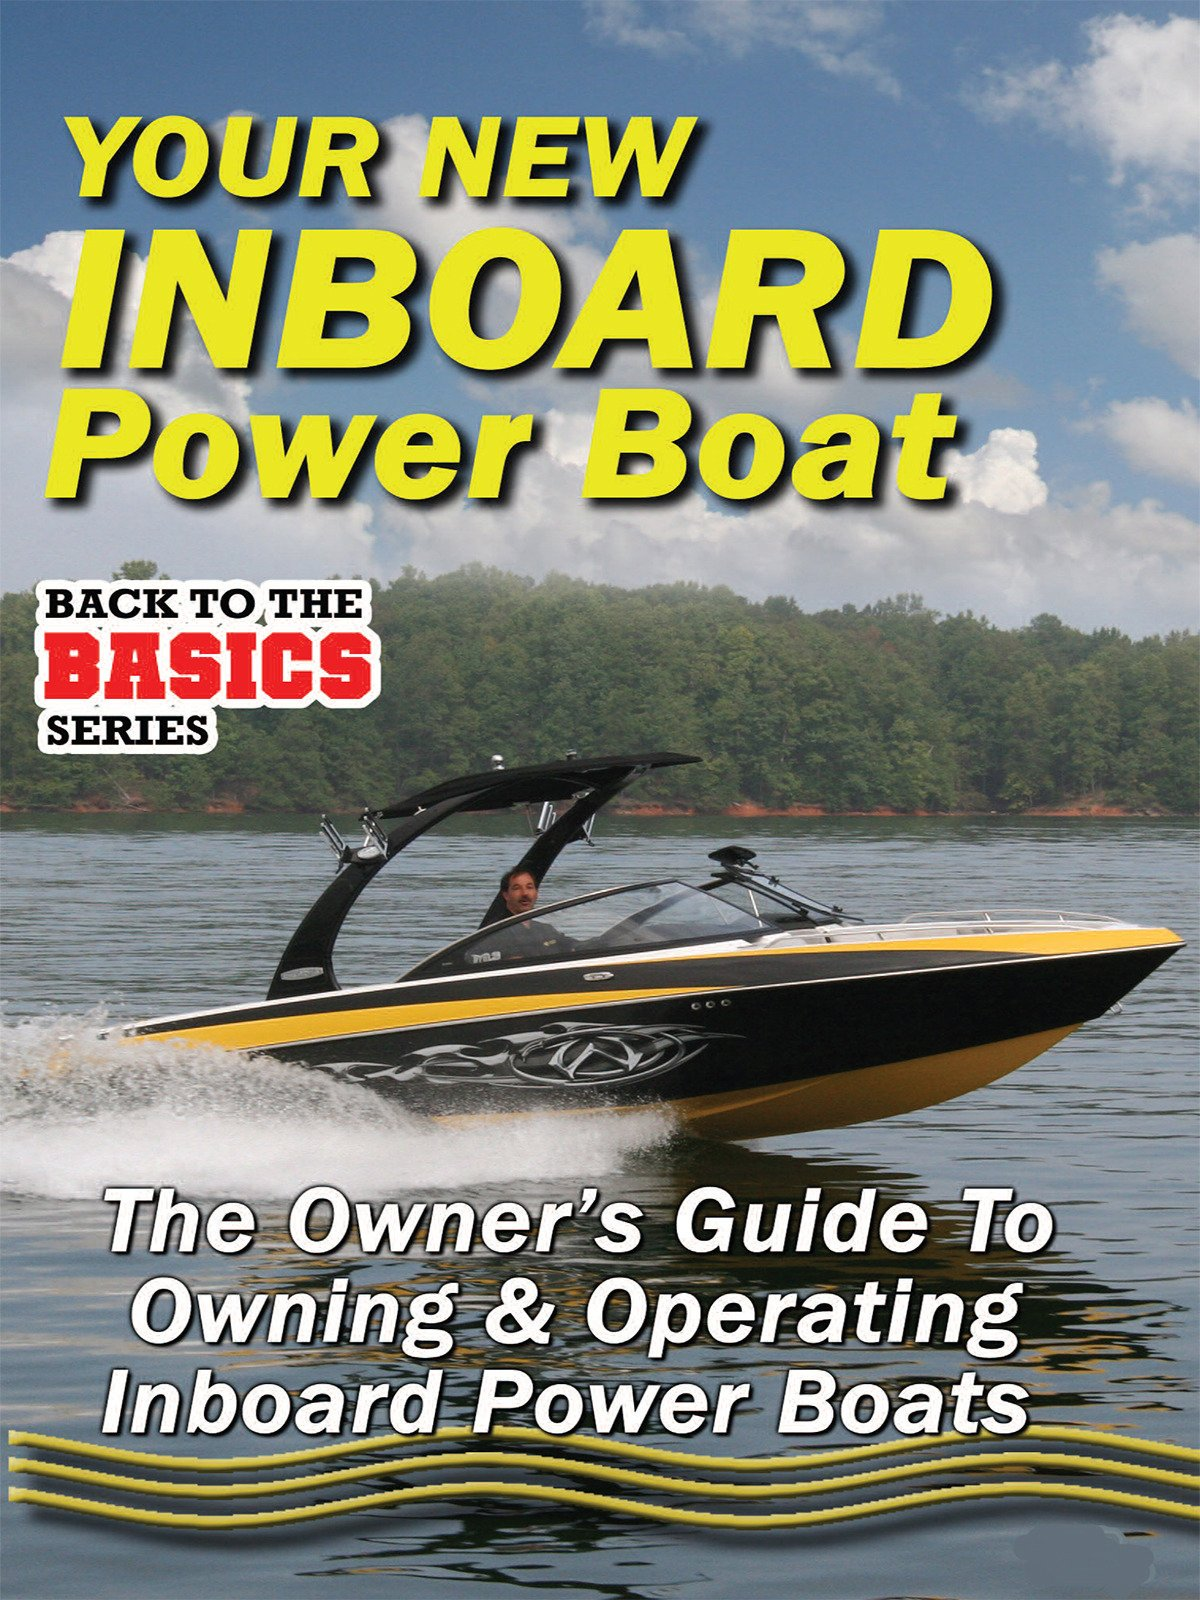 Your New Inboard Power Boat